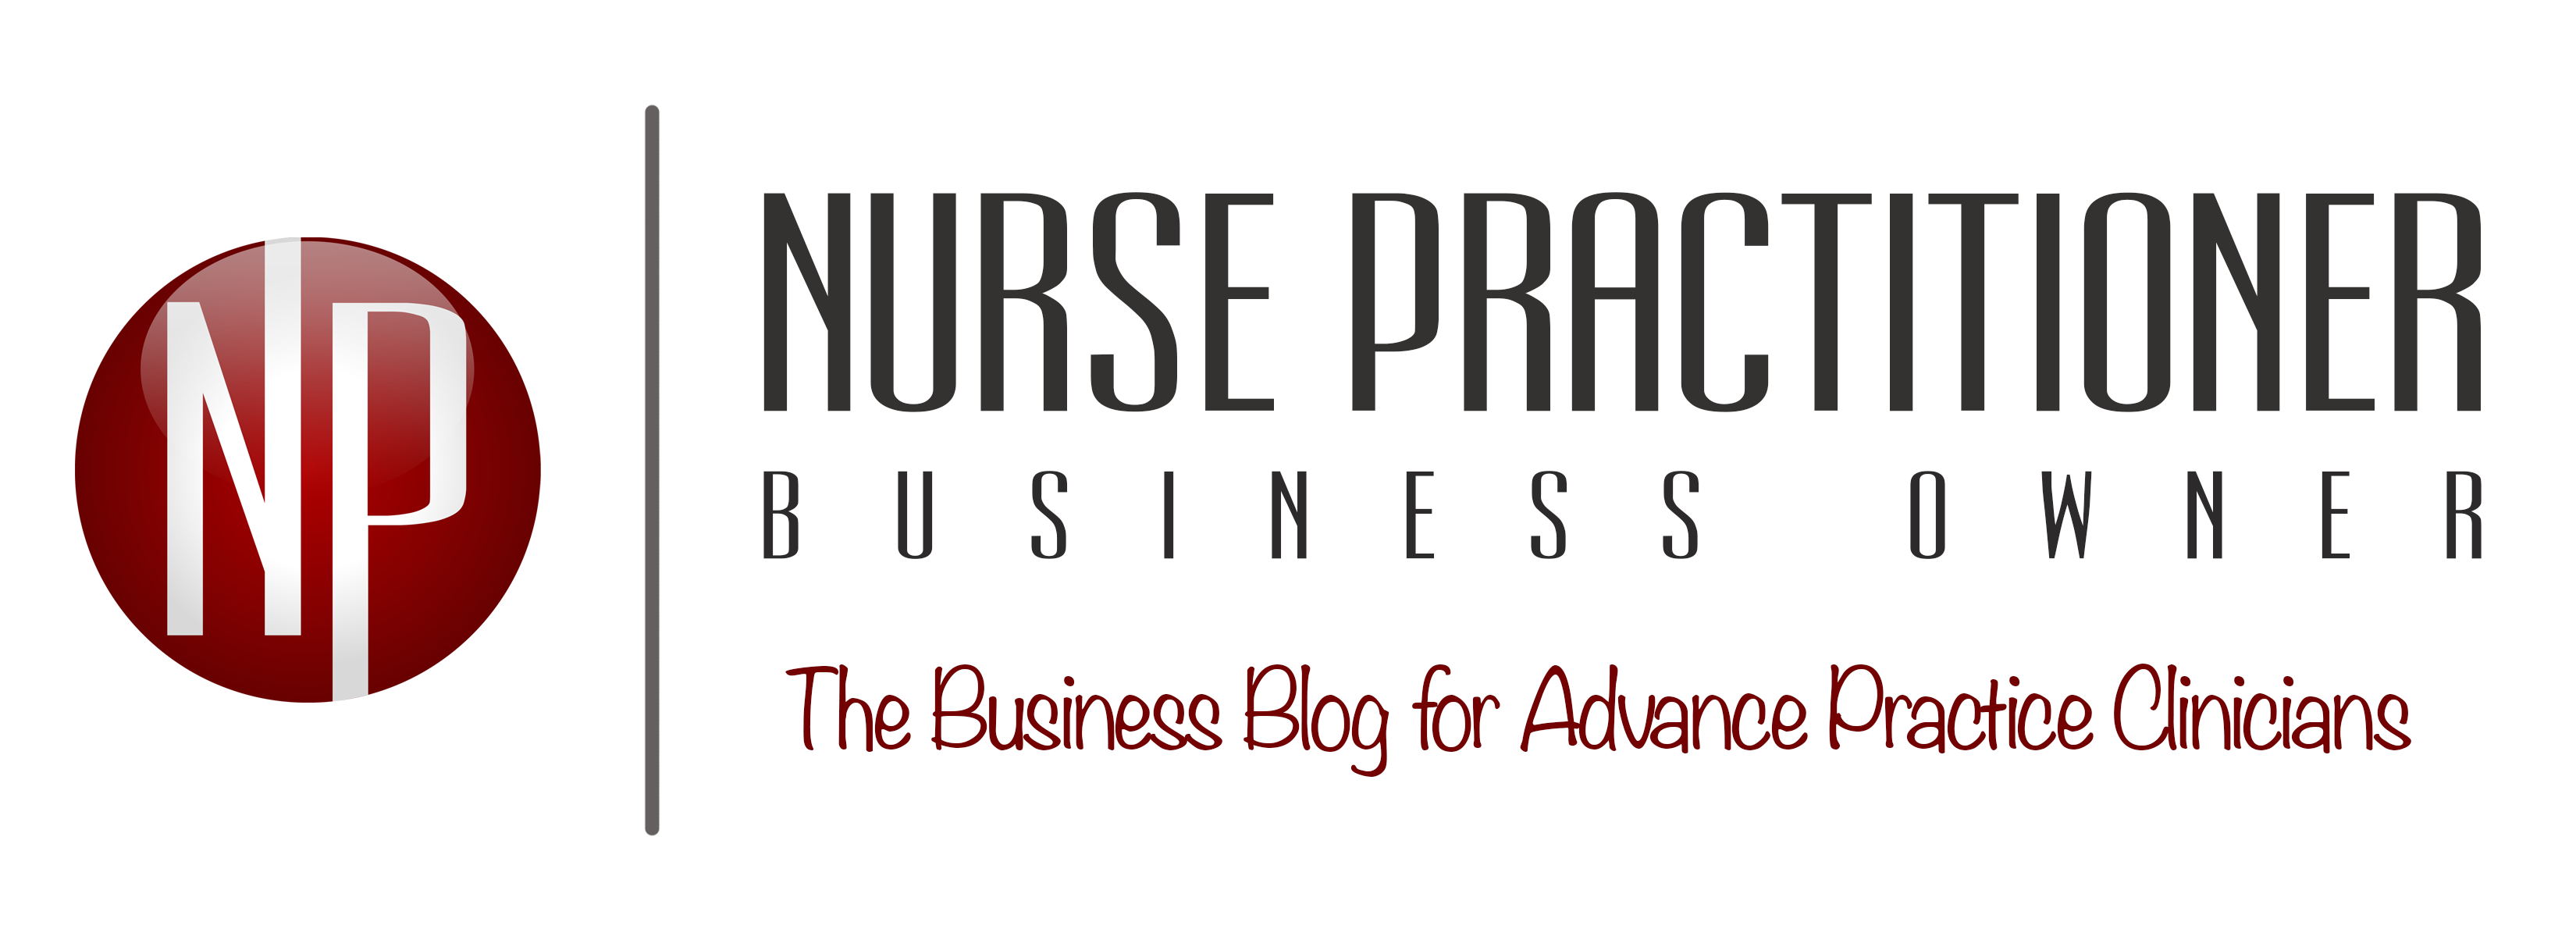 Nurse Practitioners in Business